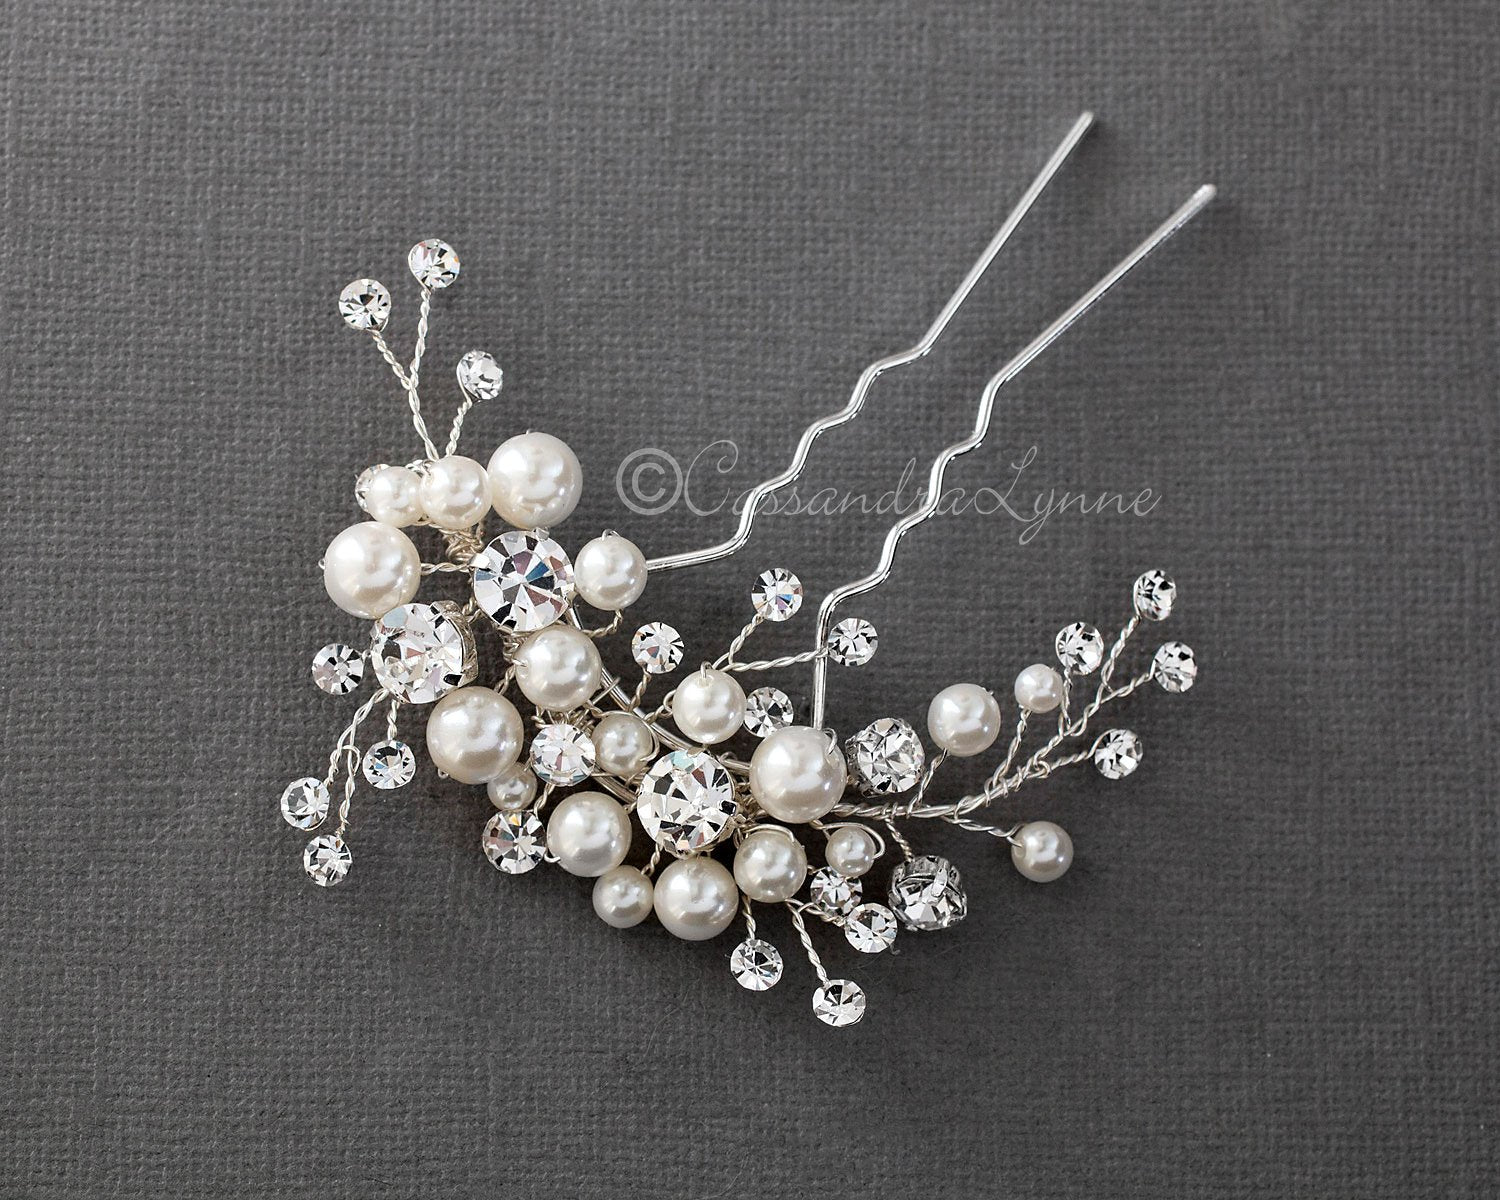 Bridal Hair Pin of Ivory Pearls and Crystal Sprays